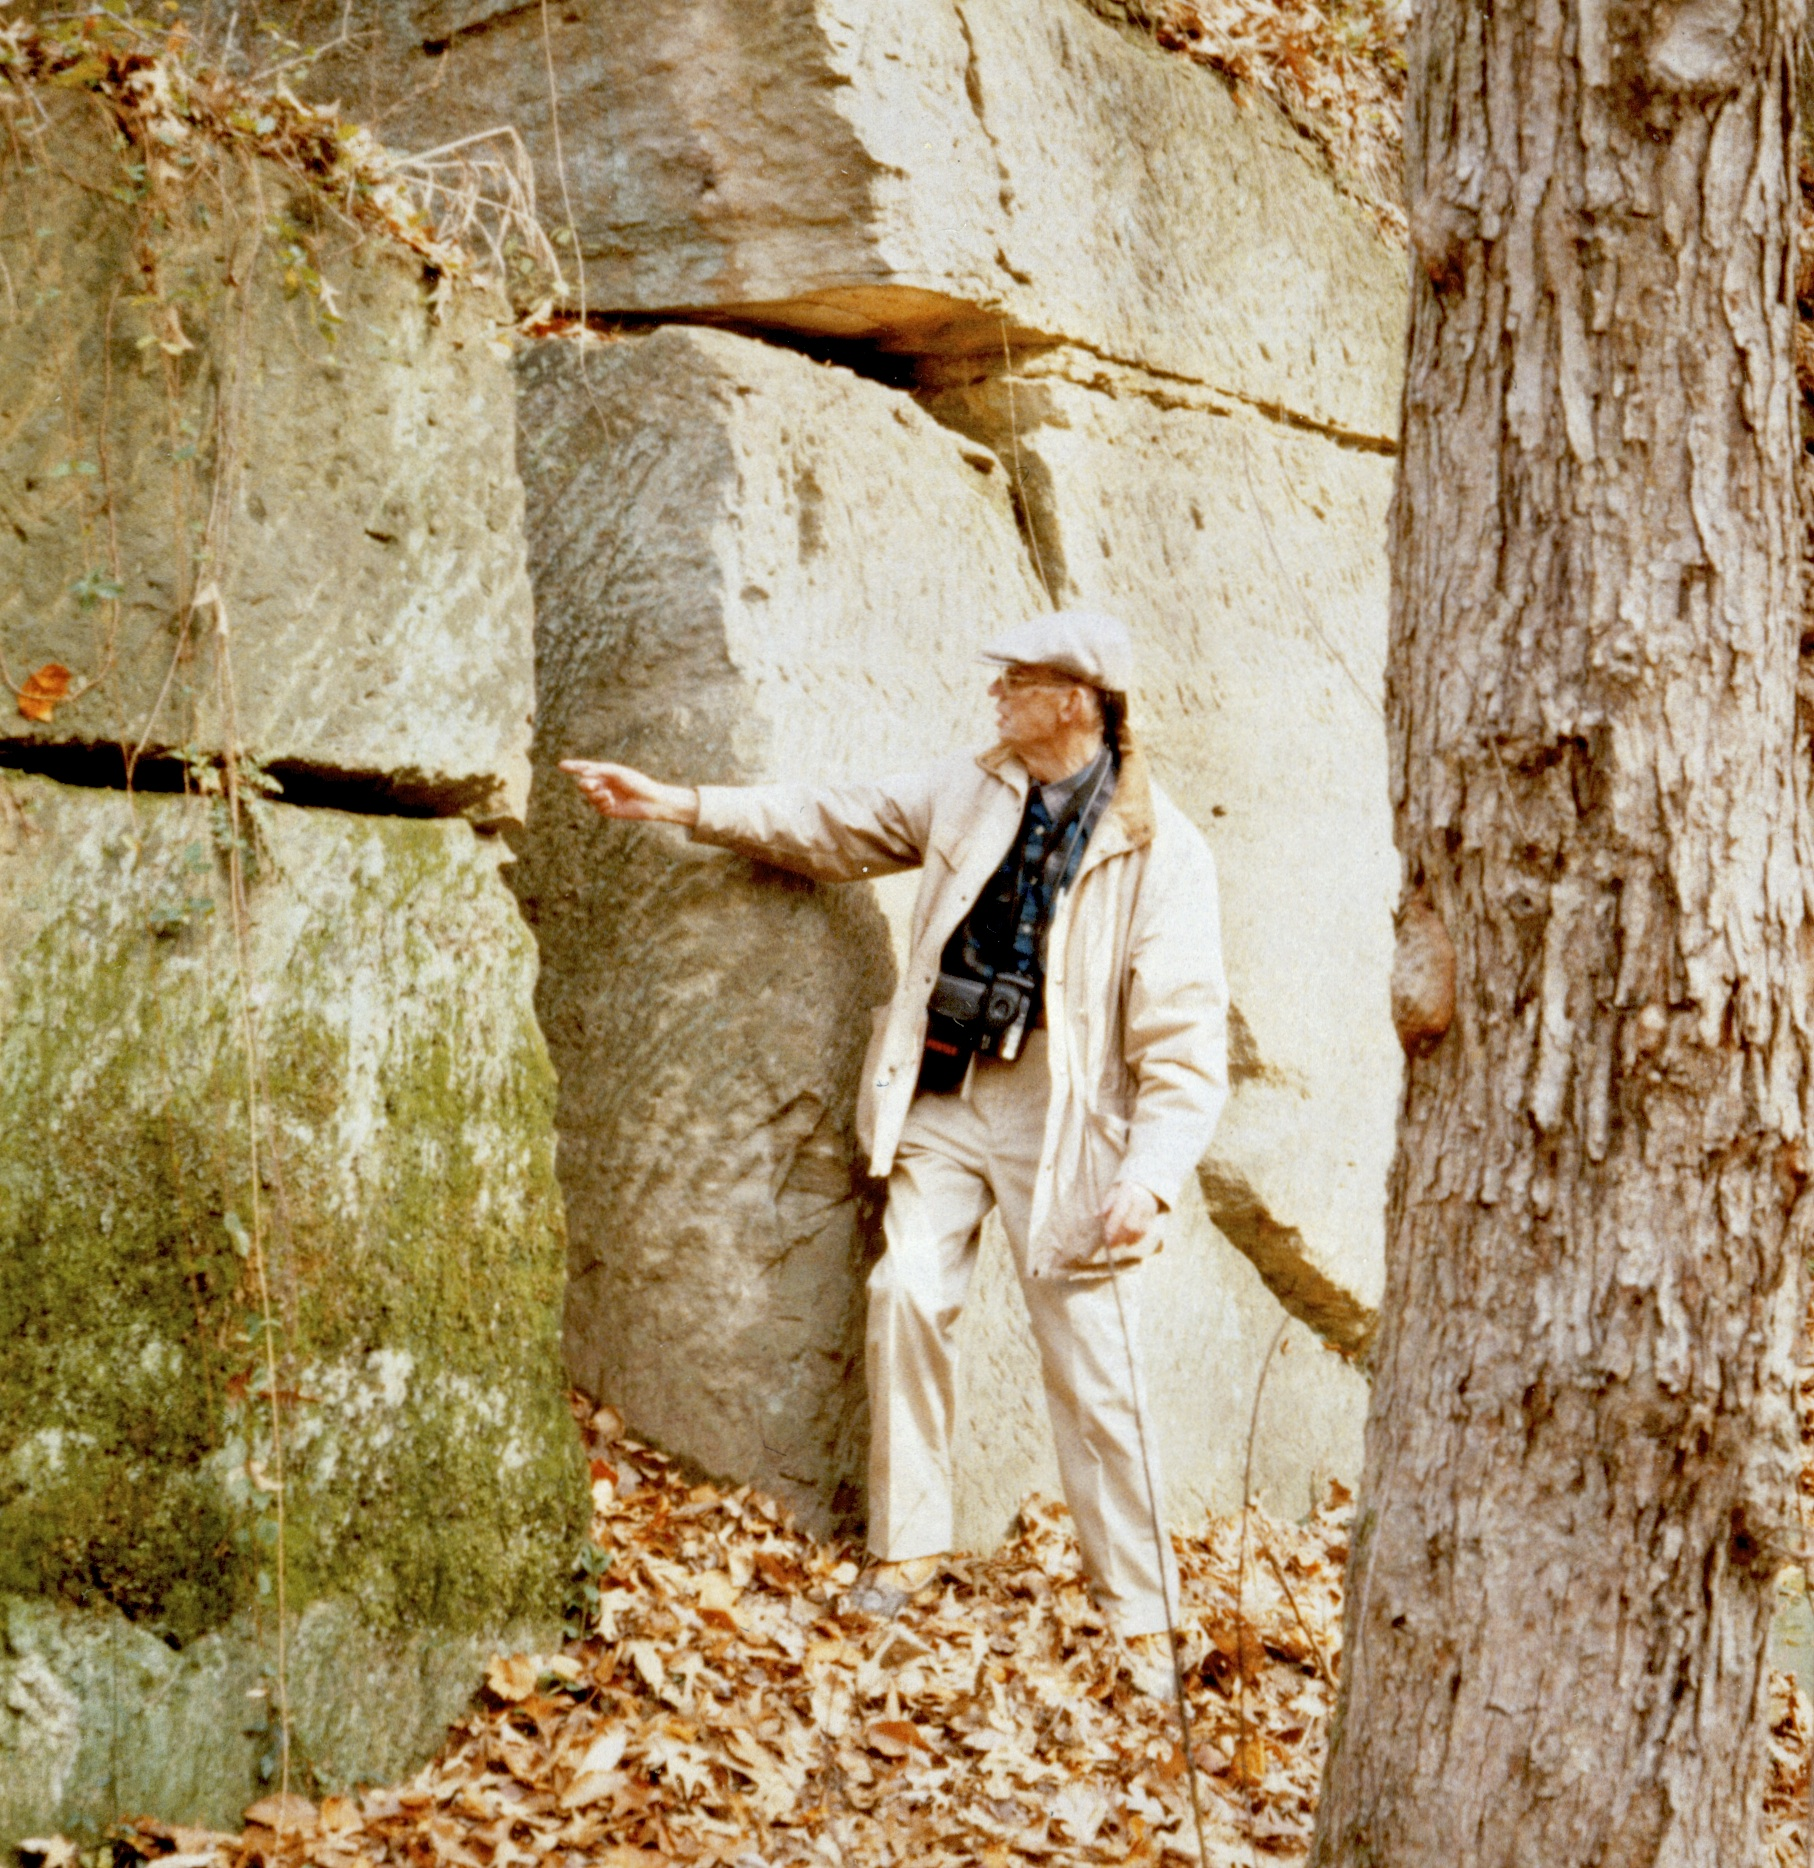 Lee Nelson examines Aquia Creek sandstone at the quarry that supplied stone for the White House.